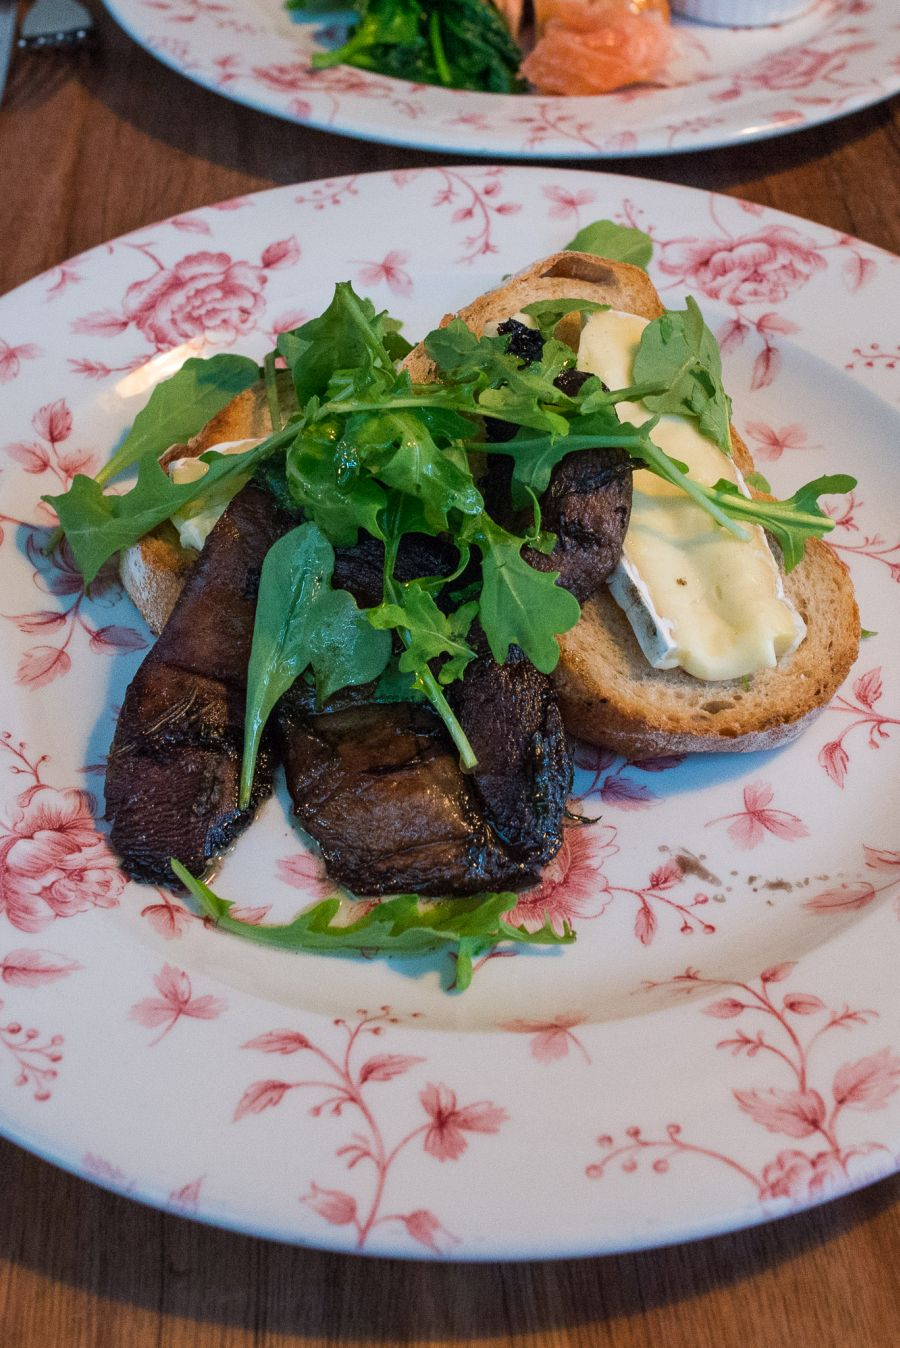 Roasted field mushroom, Tasmanian Brie, chive oil on toast (AU$17)